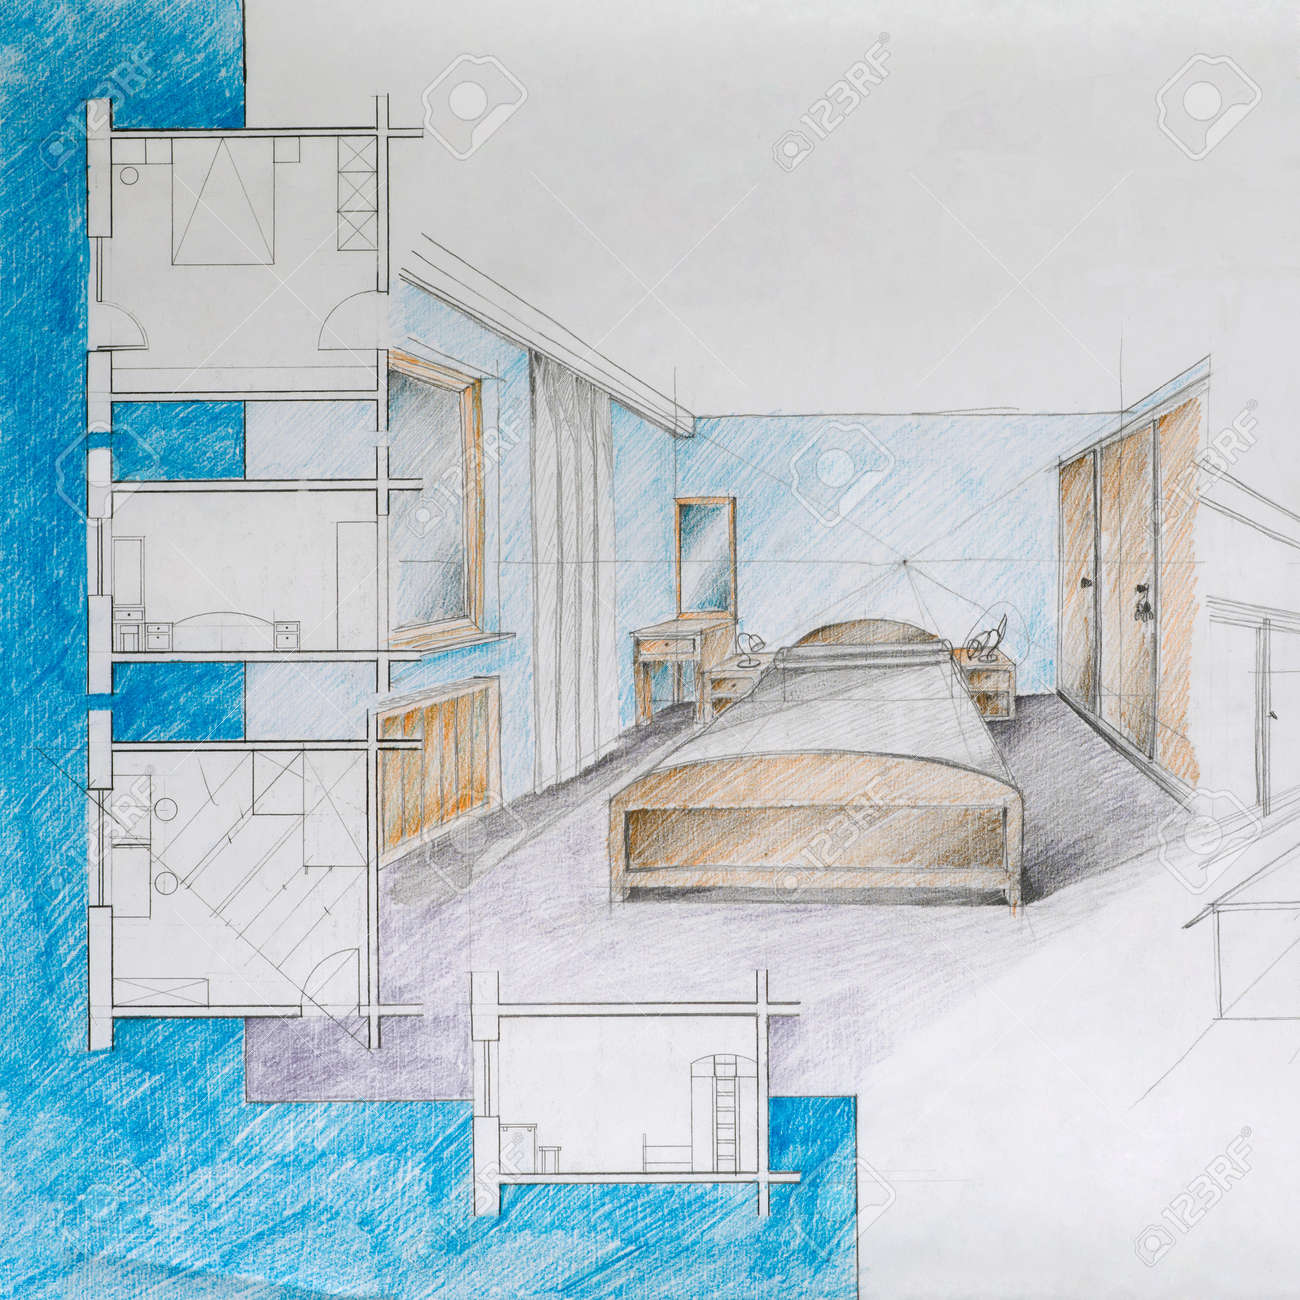 Graphic illustration and architectural blueprint of an apartment graphic illustration and architectural blueprint of an apartment bedroom with colorful pencils stock illustration malvernweather Image collections